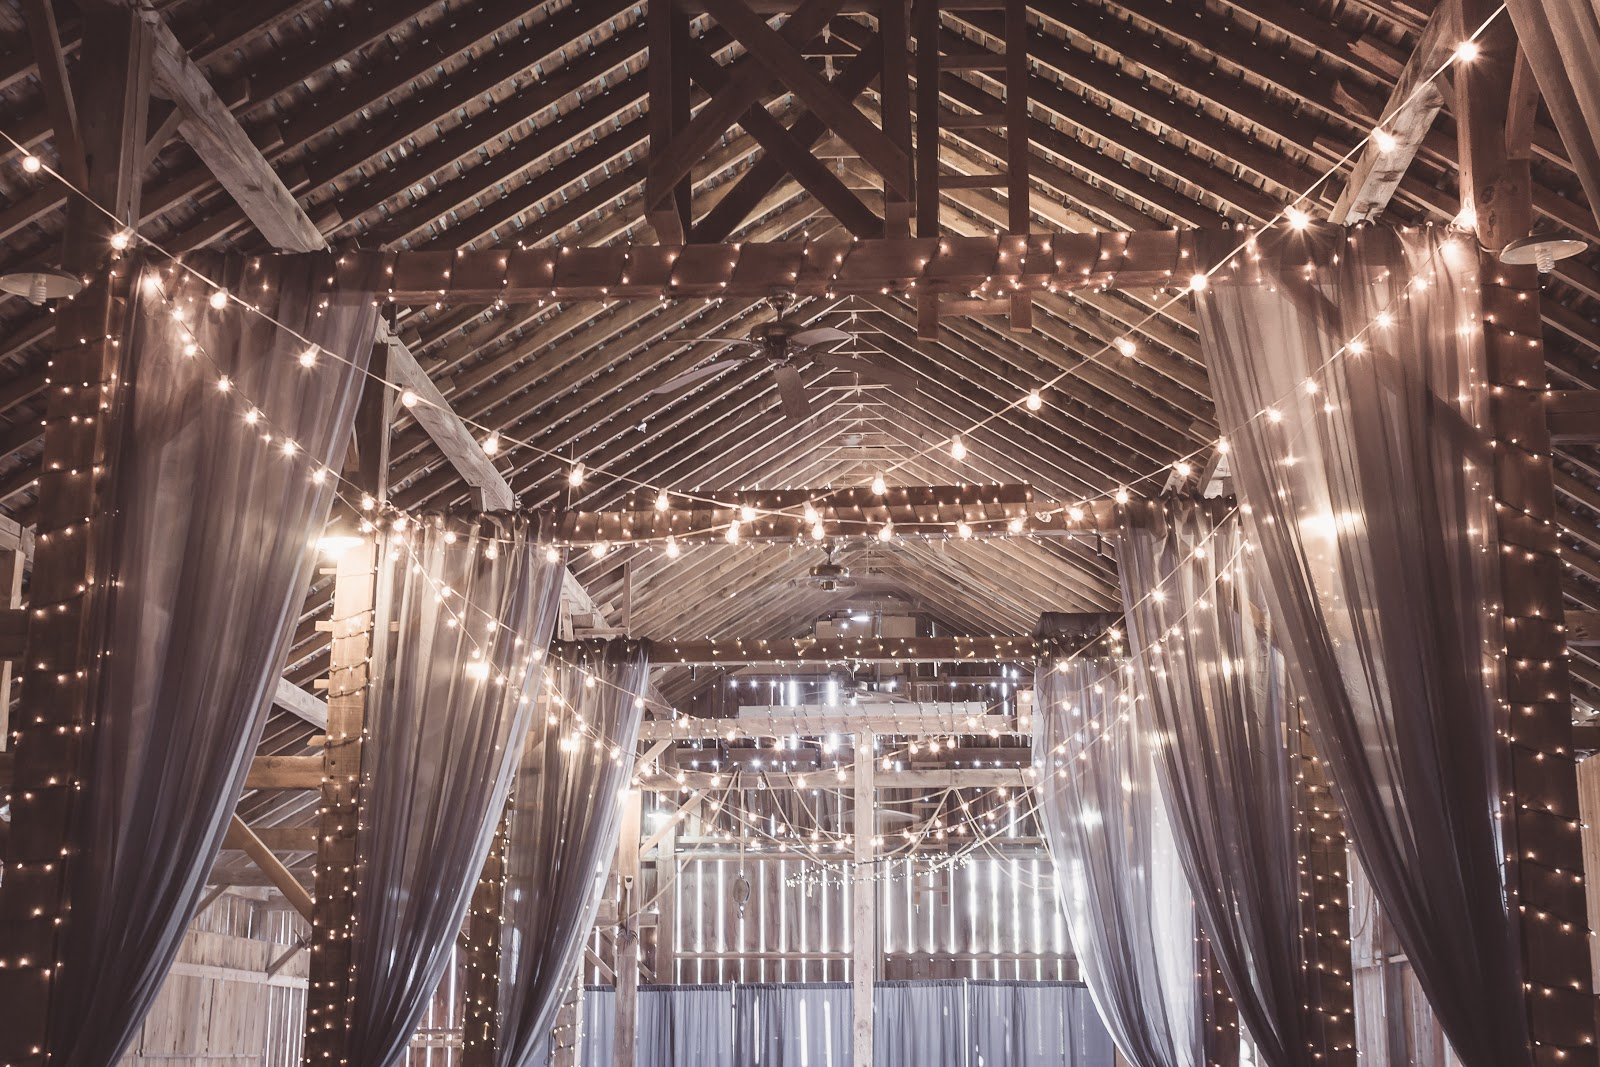 lights and drapes hanging from the ceiling